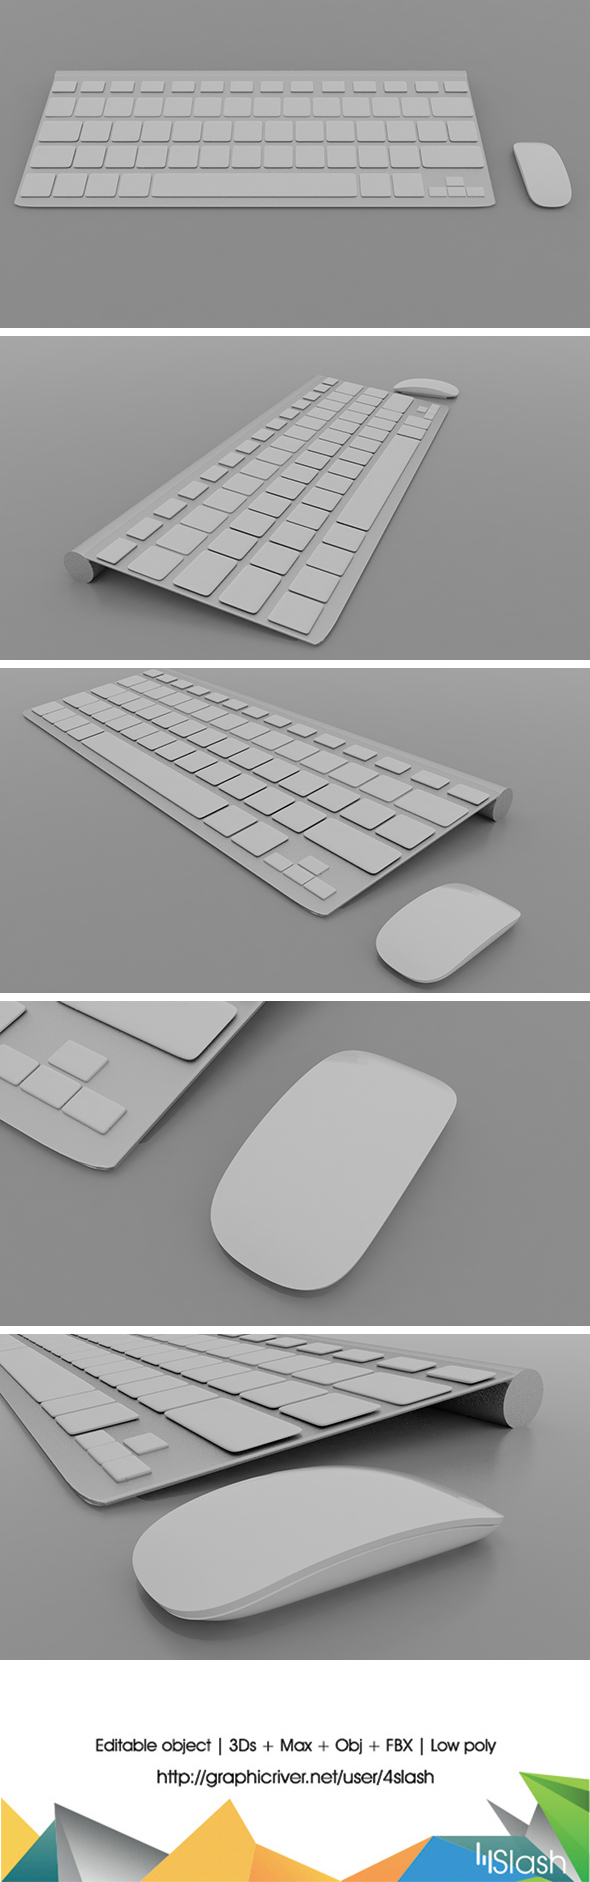 Mac keyboard & Mouse - 3DOcean Item for Sale